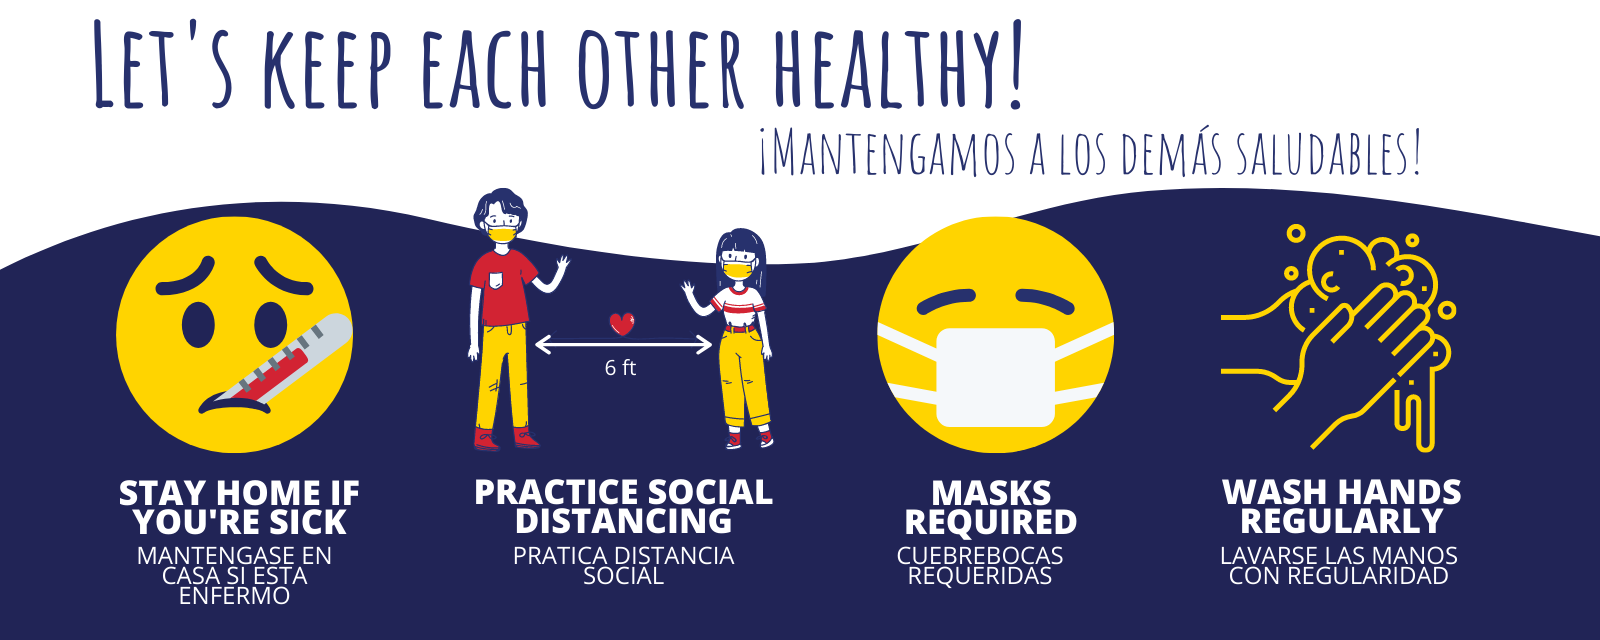 Let's Keep Each Other Healthy! Stay home if you're sick. Social Distance, Masks Required and Wash Your Hands.